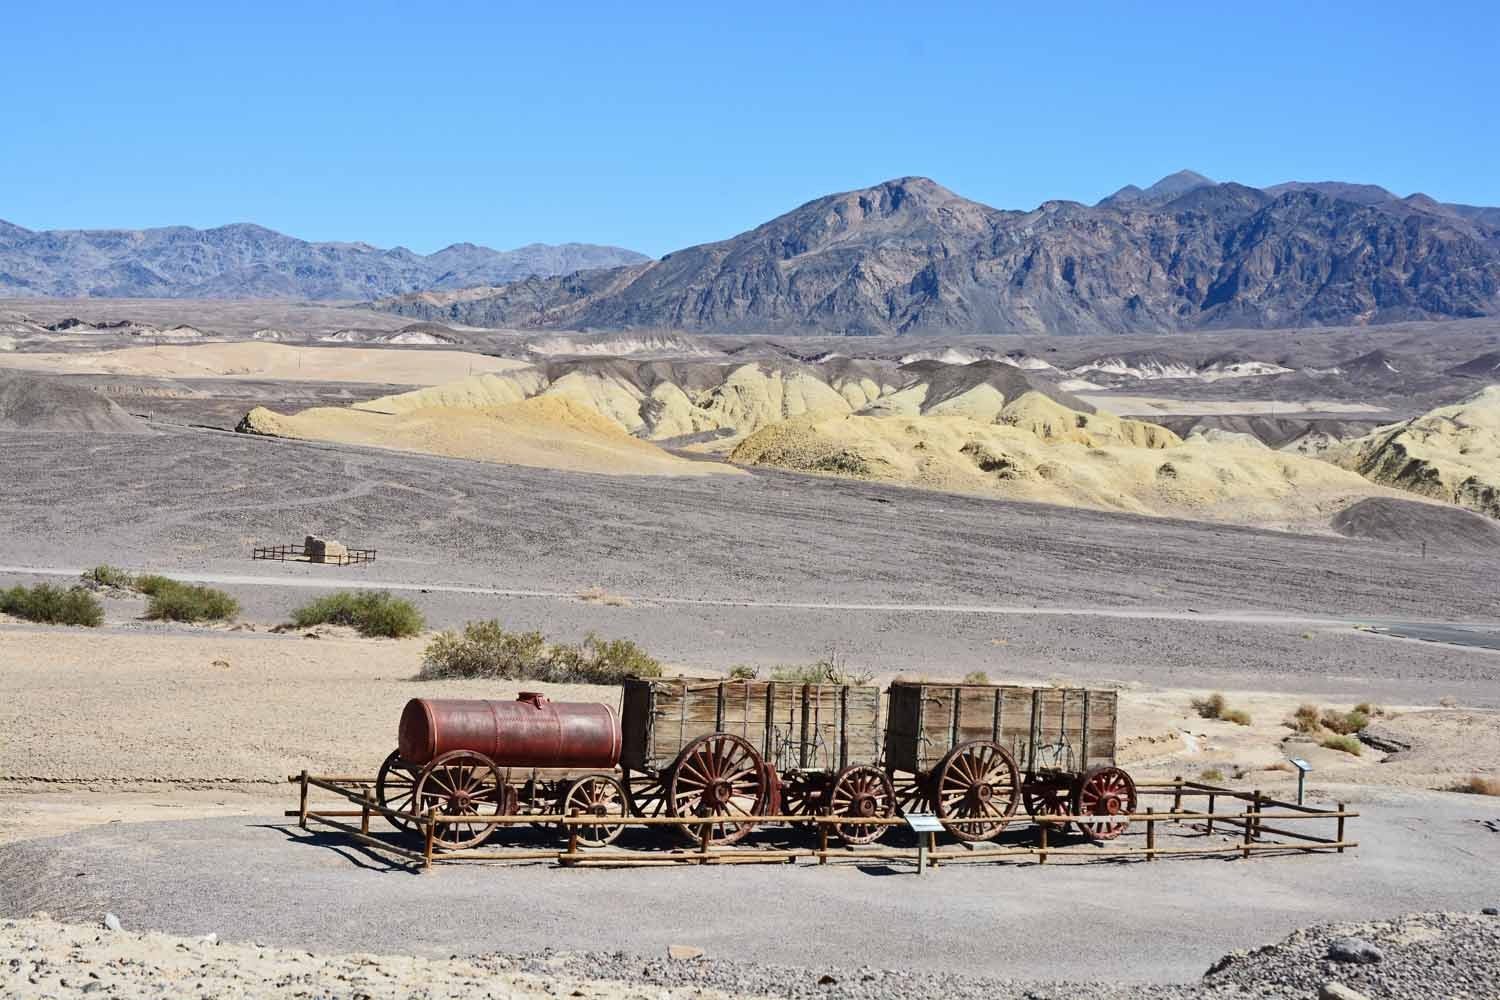 Death Valley is where 20 team Borax originally came from.  Actually it was 18 mules and two guide horses.  They needed the mule power to get their product up and out of the valley.  The 20 team handle was created by a marketing firm and is still used today.